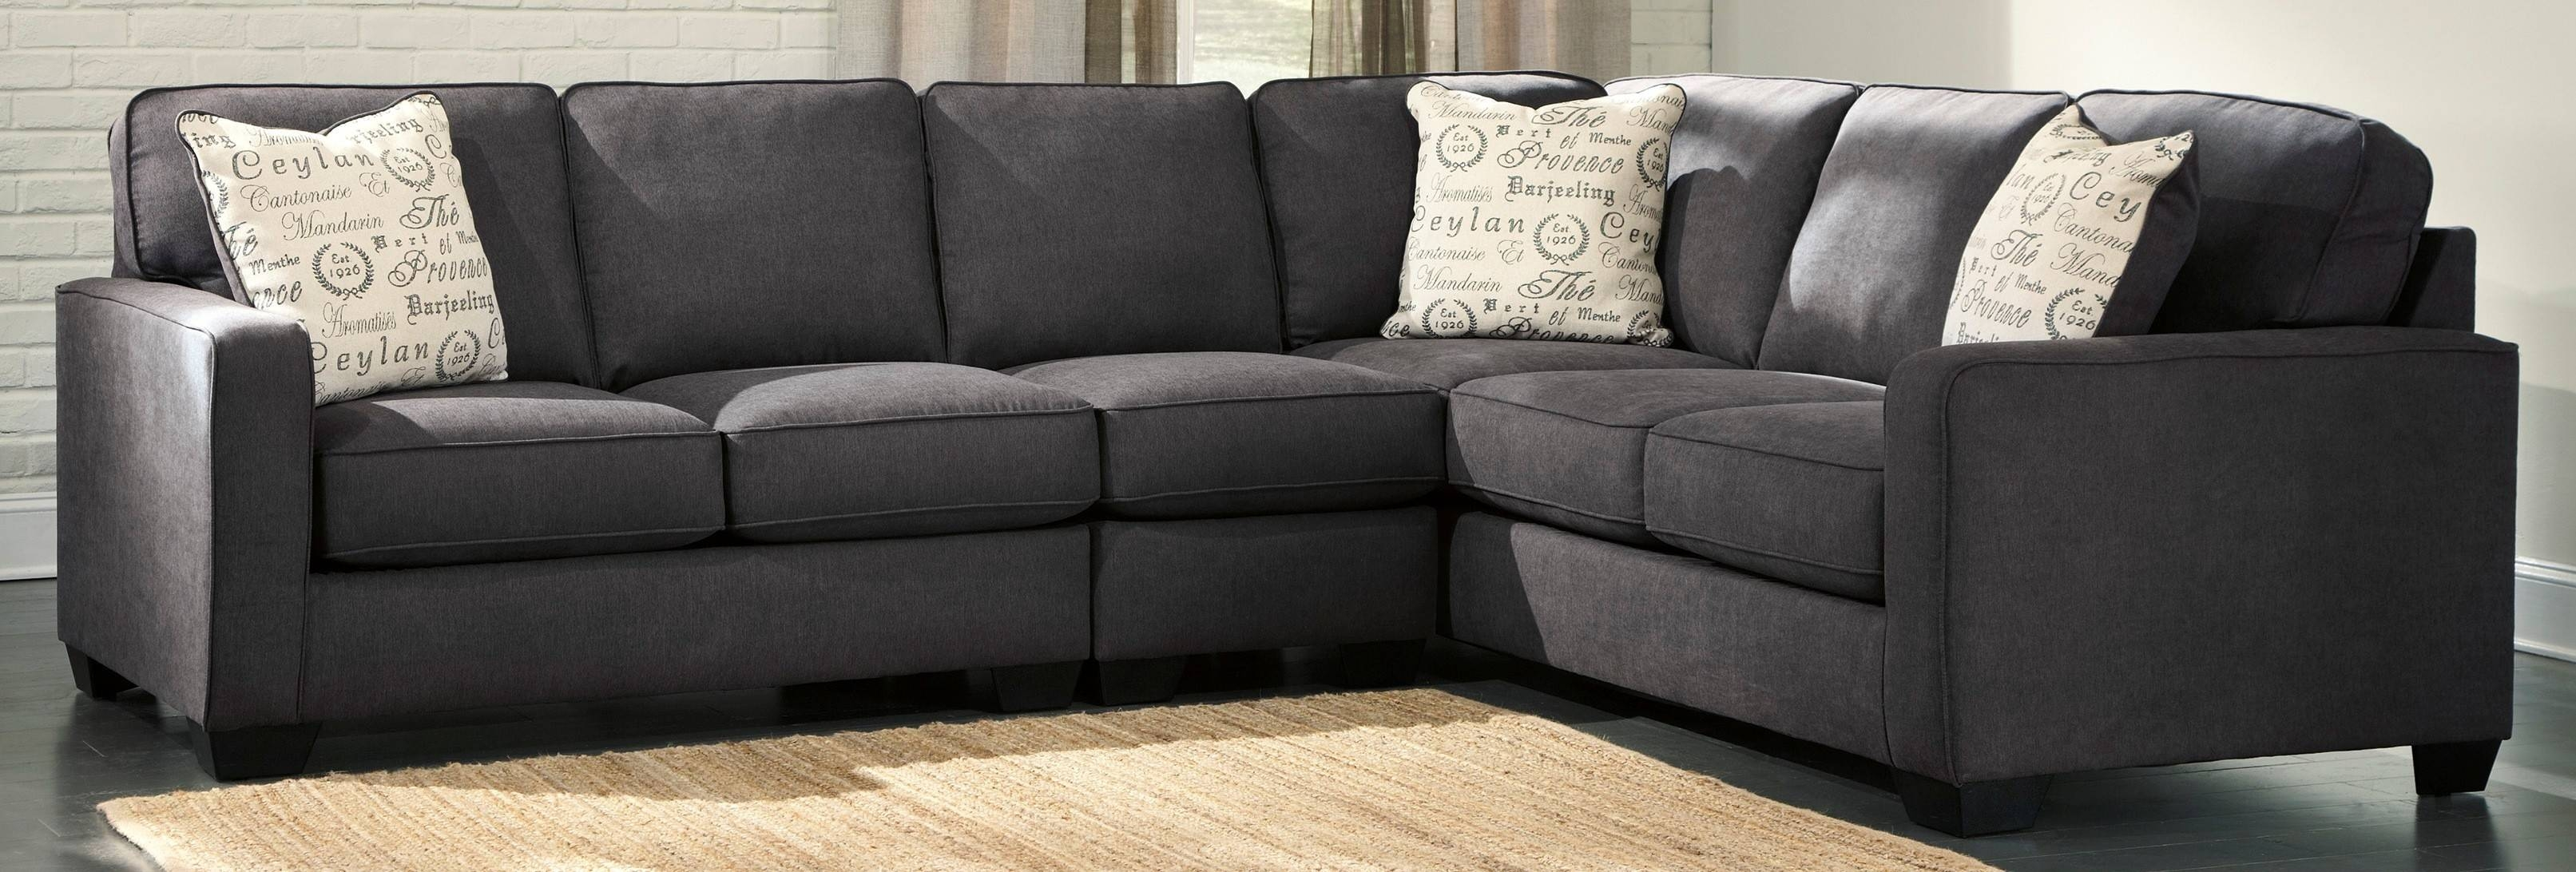 Interior: Gorgeous Lady Charcoal Sectional For Living Room pertaining to Individual Piece Sectional Sofas (Image 10 of 25)